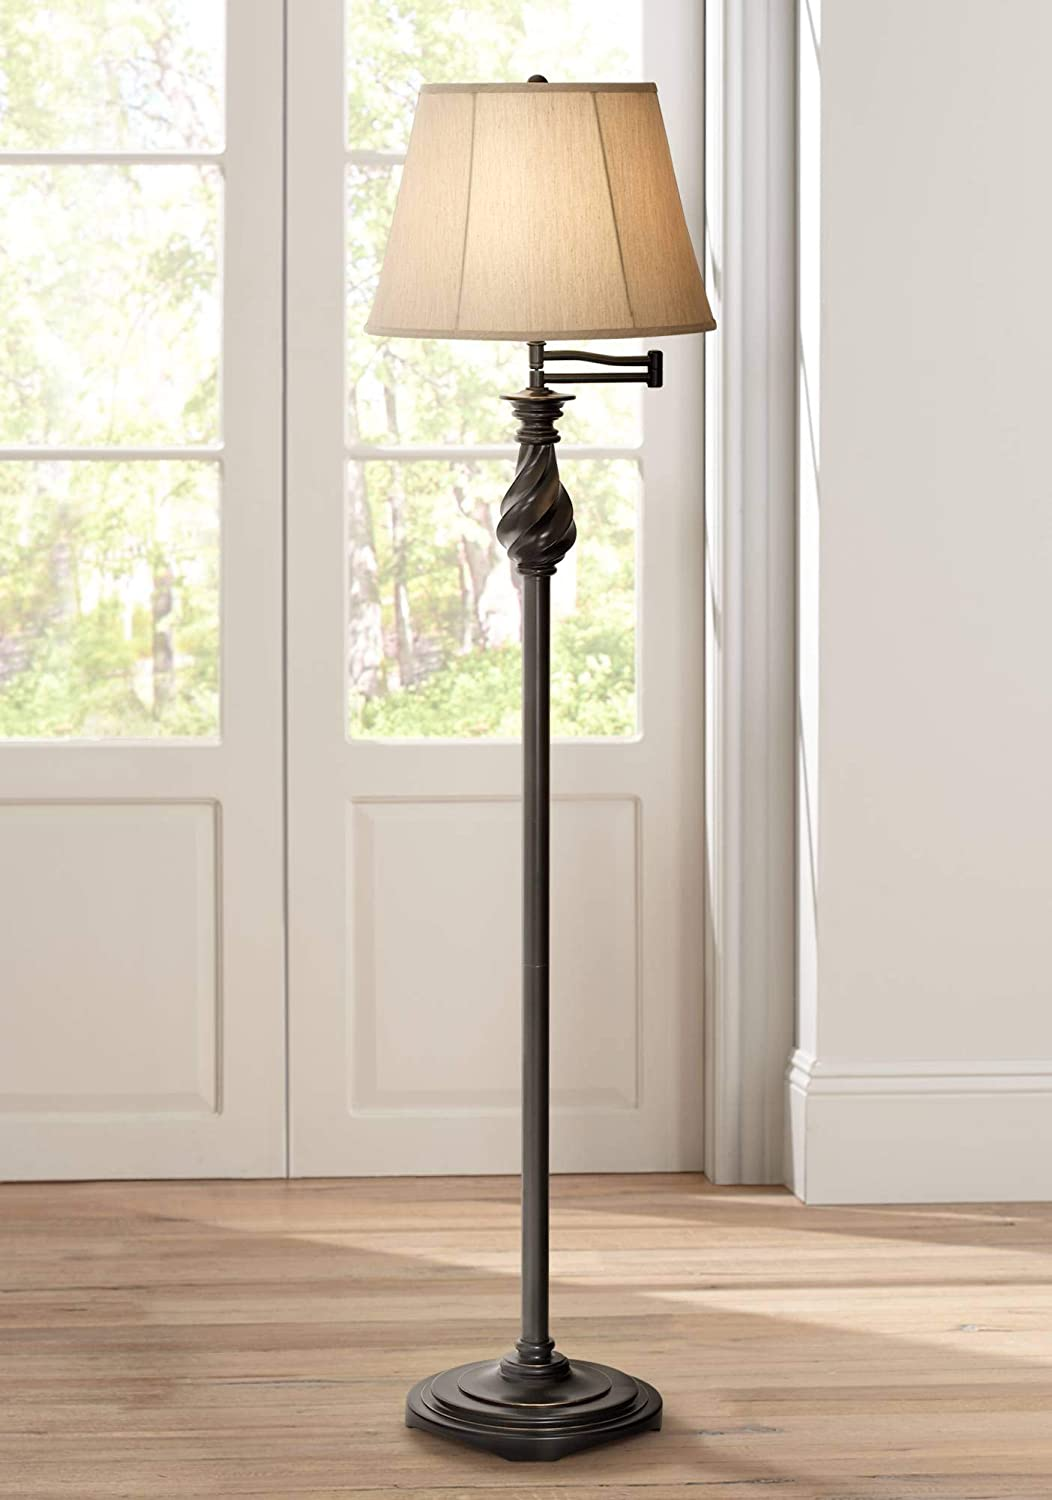 Traditional Swing Arm Floor Lamp Painted Black Bronze Swirl Font Faux Silk Beige Shade for Living Room Reading Office – Regency Hill